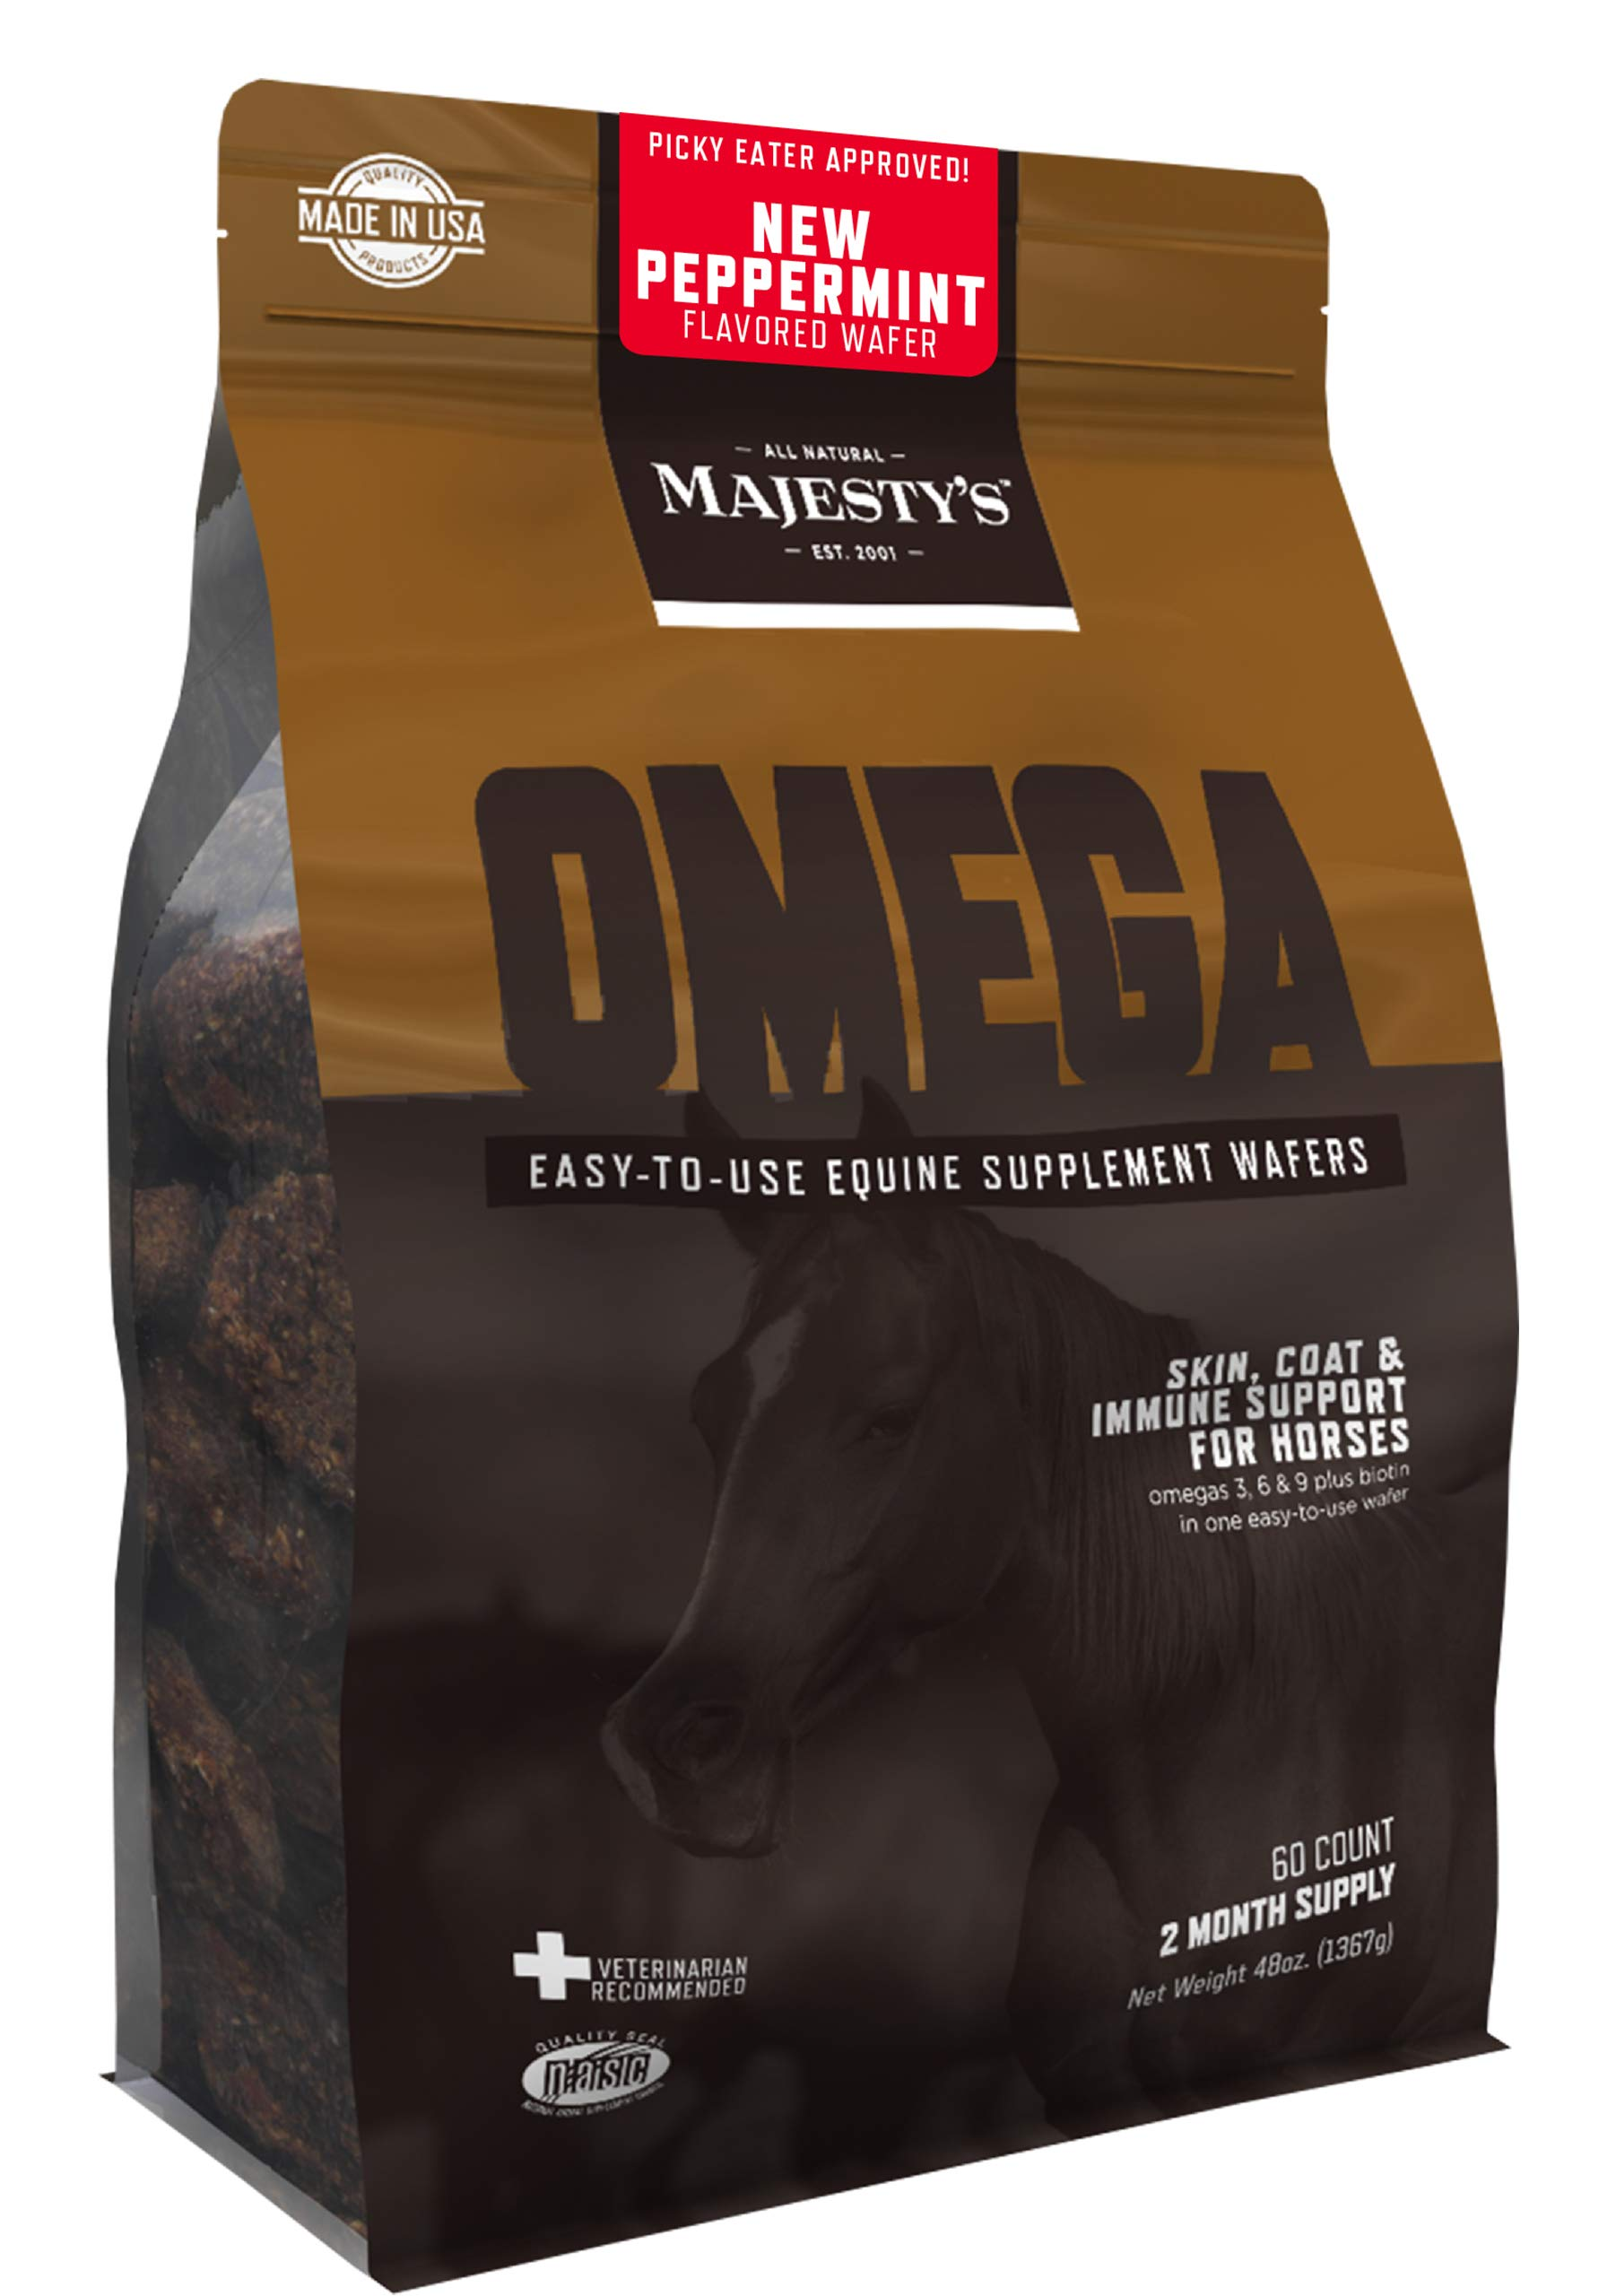 Majesty's Omega Peppermint Wafers - Horse/Equine Skin, Coat, Immune Support Supplement - Omega 3, 6, 9, Biotin - Anti-Inflammatory, Improves Immune/Digestive System - 2 Month Supply (1 Bag/60 Count) by Majesty's